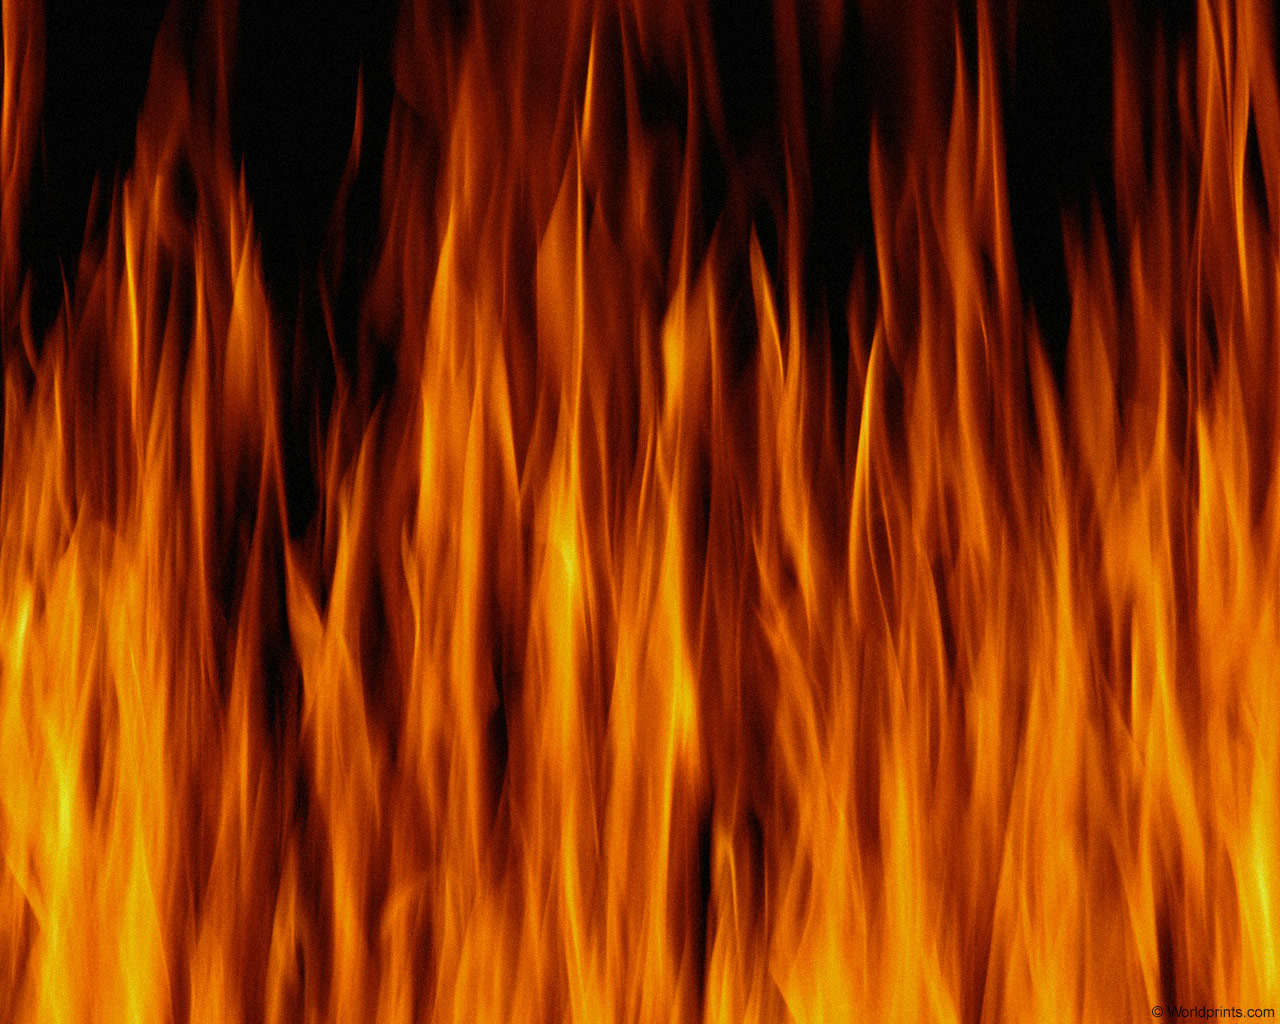 огонь, texture, огня, flame, fire background texture, download photo, background, языки пламени